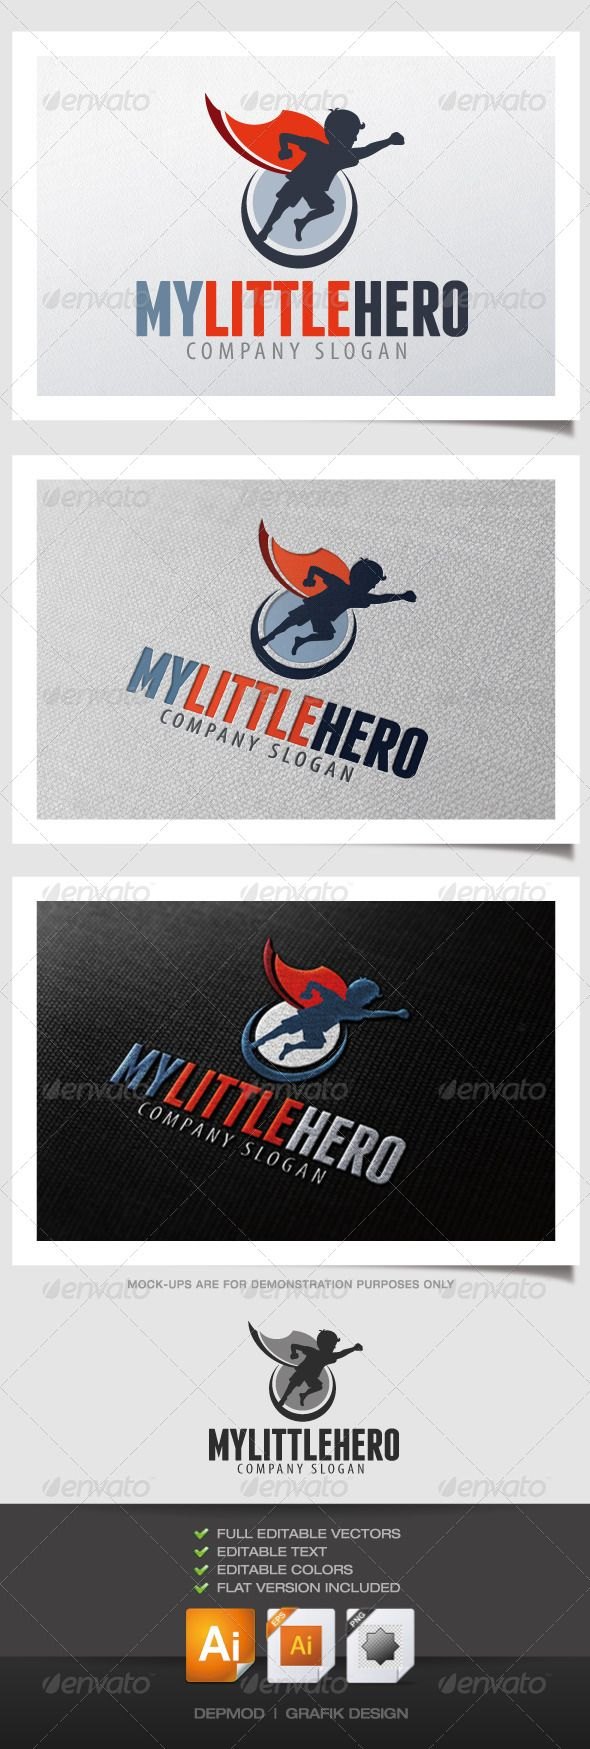 My Little Hero	 Logo Design Template Vector #logotype Download it here: http://graphicriver.net/item/my-little-hero-logo/4263157?s_rank=446?ref=nexion